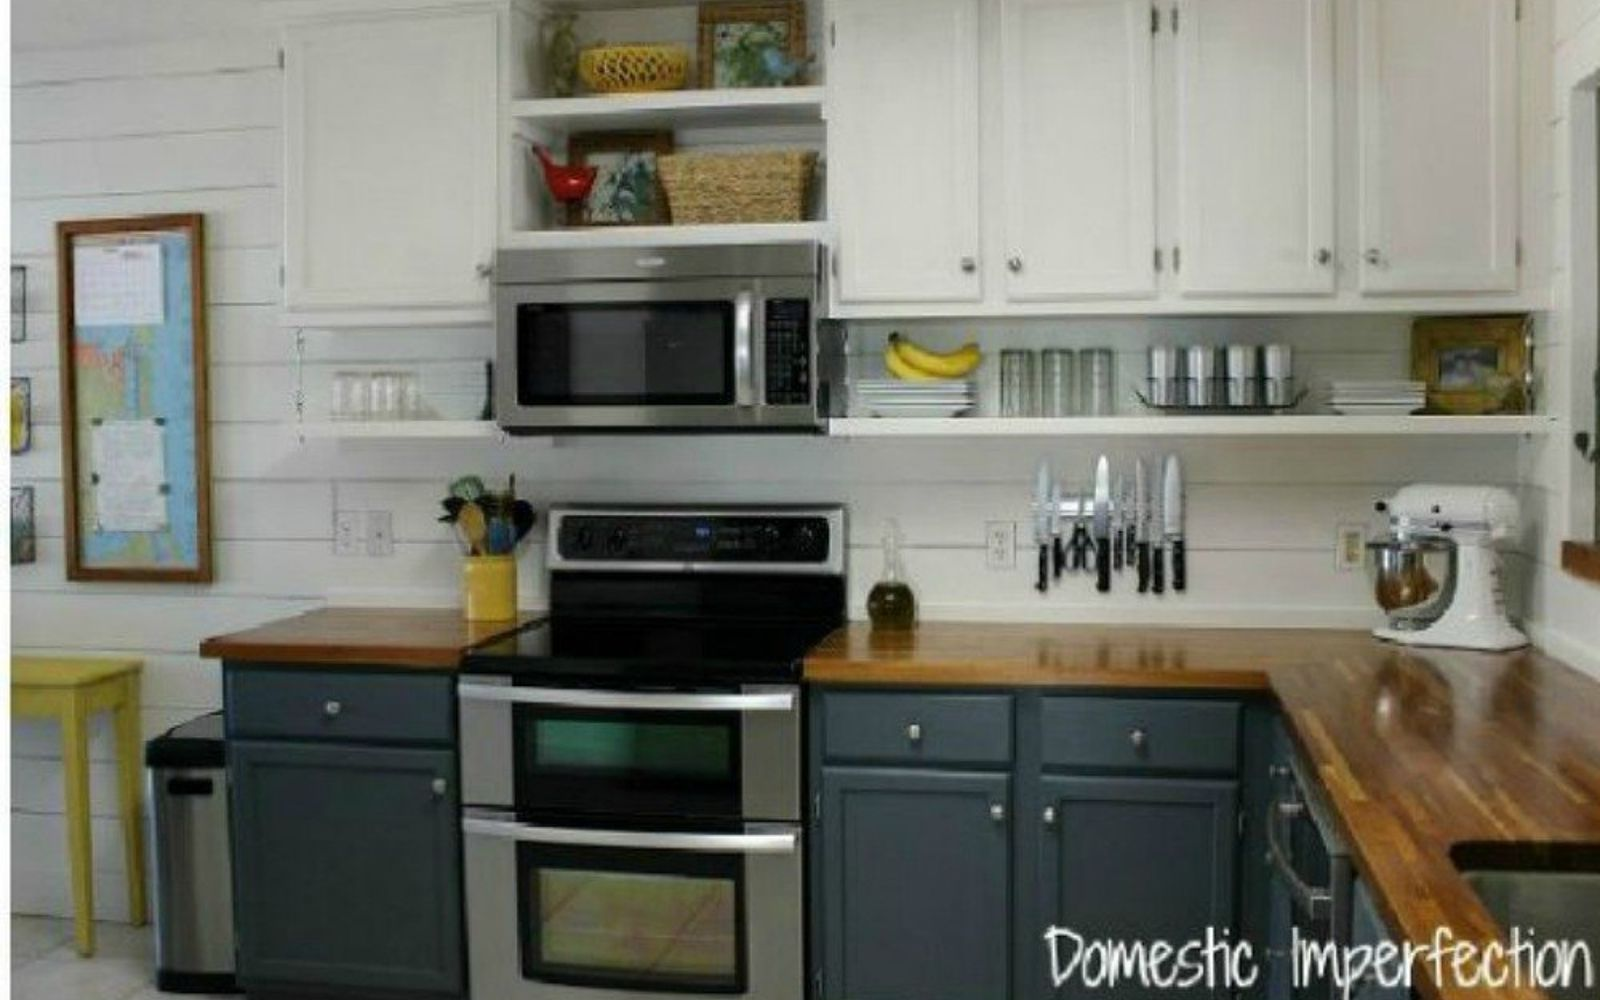 s 15 clever ways to add more kitchen storage space with open shelves, kitchen design, shelving ideas, storage ideas, Add a layer underneath cabinets